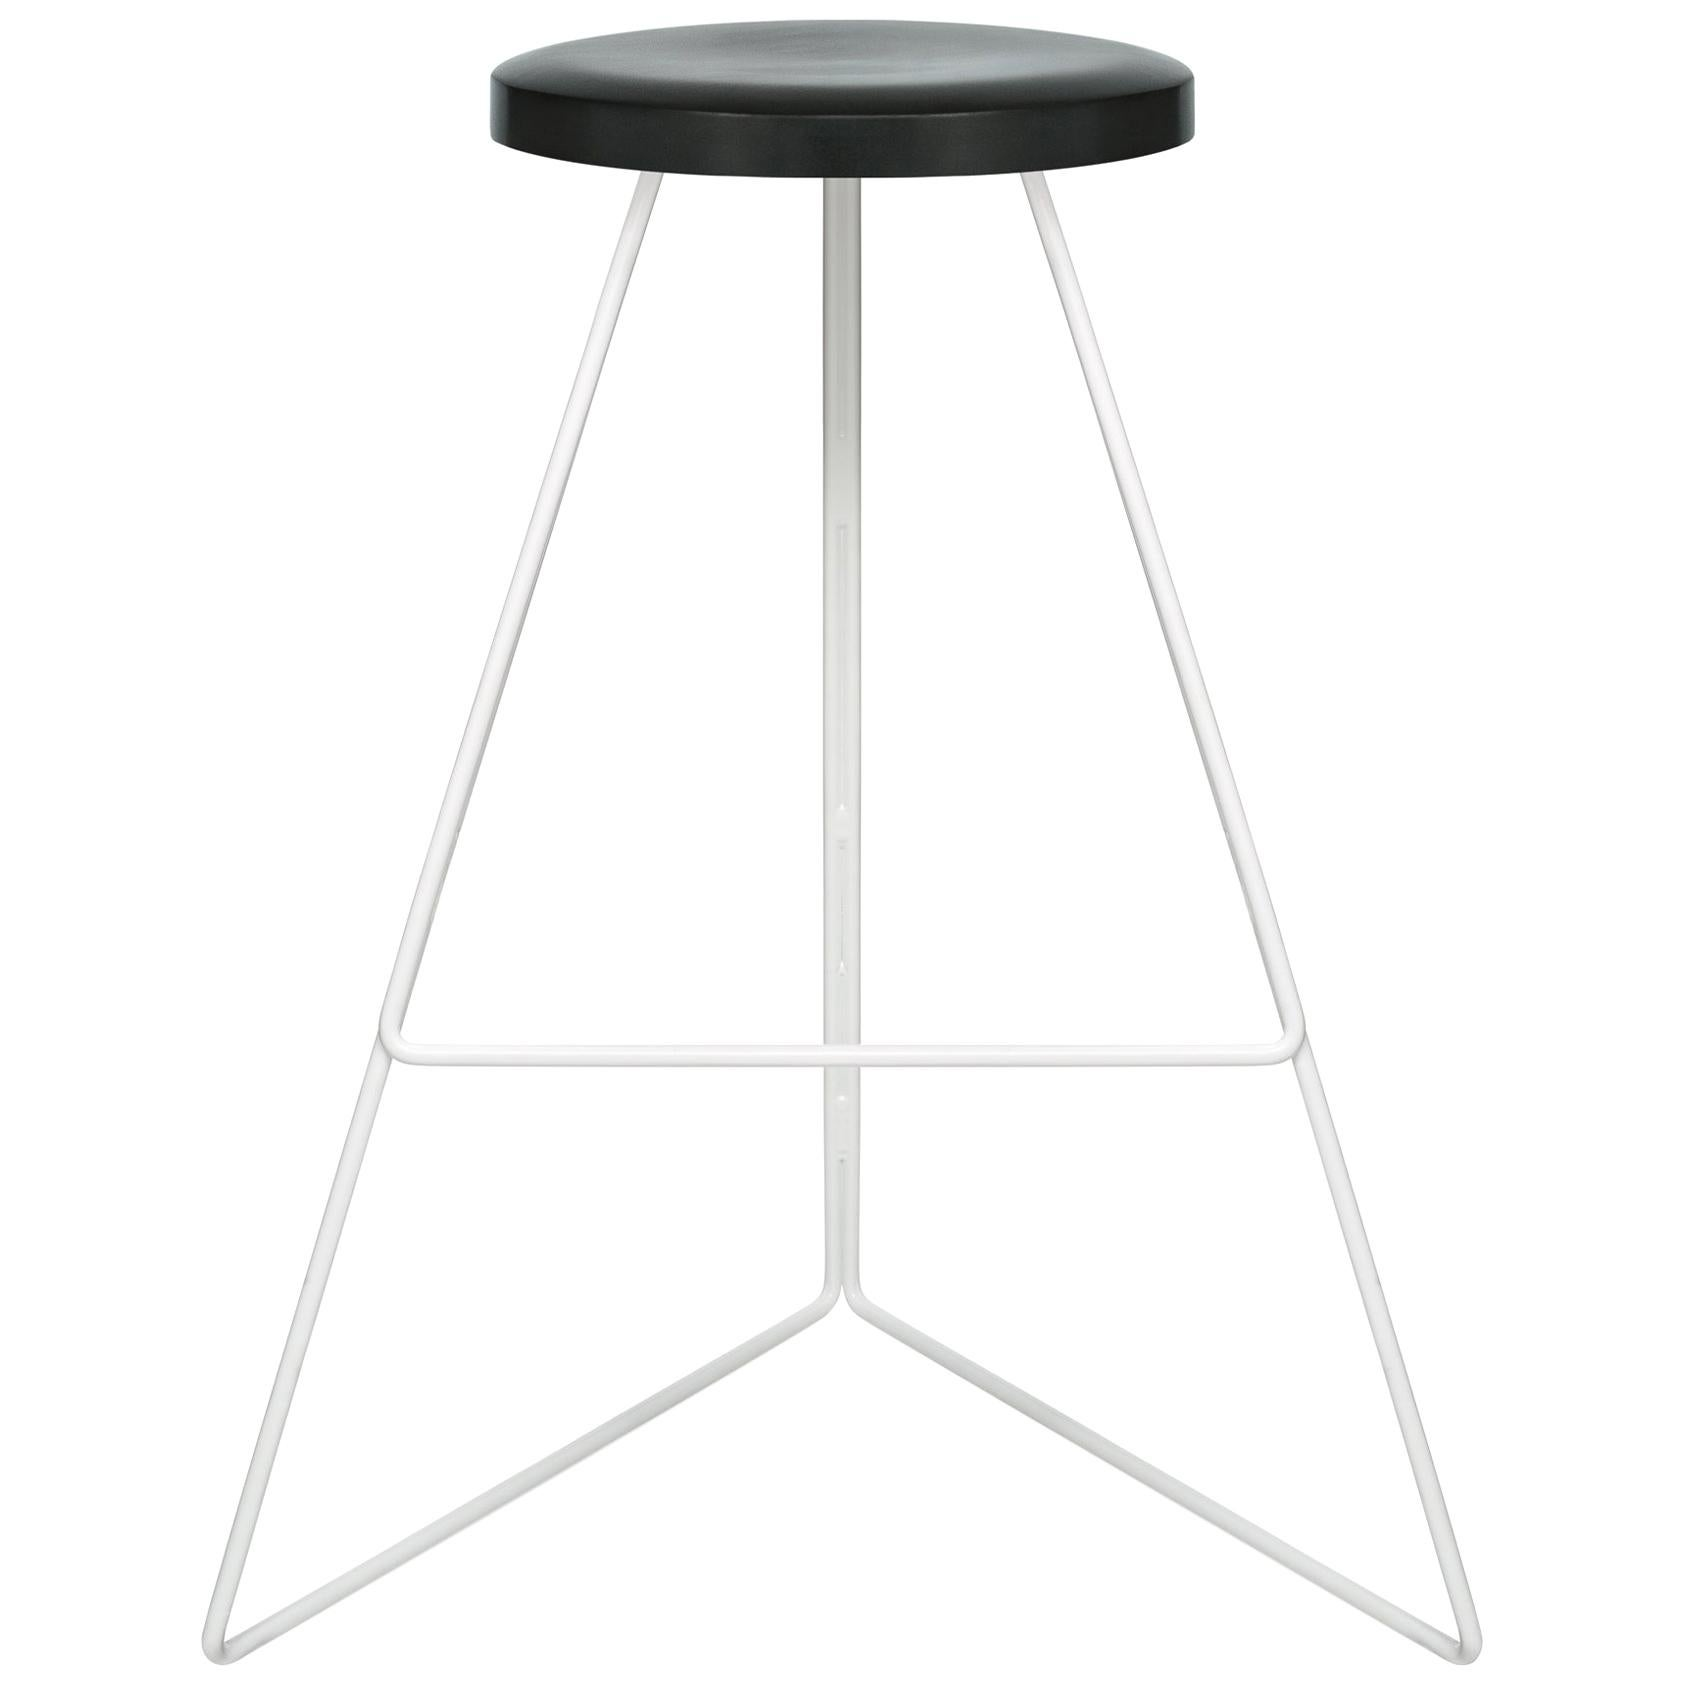 The Coleman Stool, White and Charcoal Cast Concrete, 54 Variations